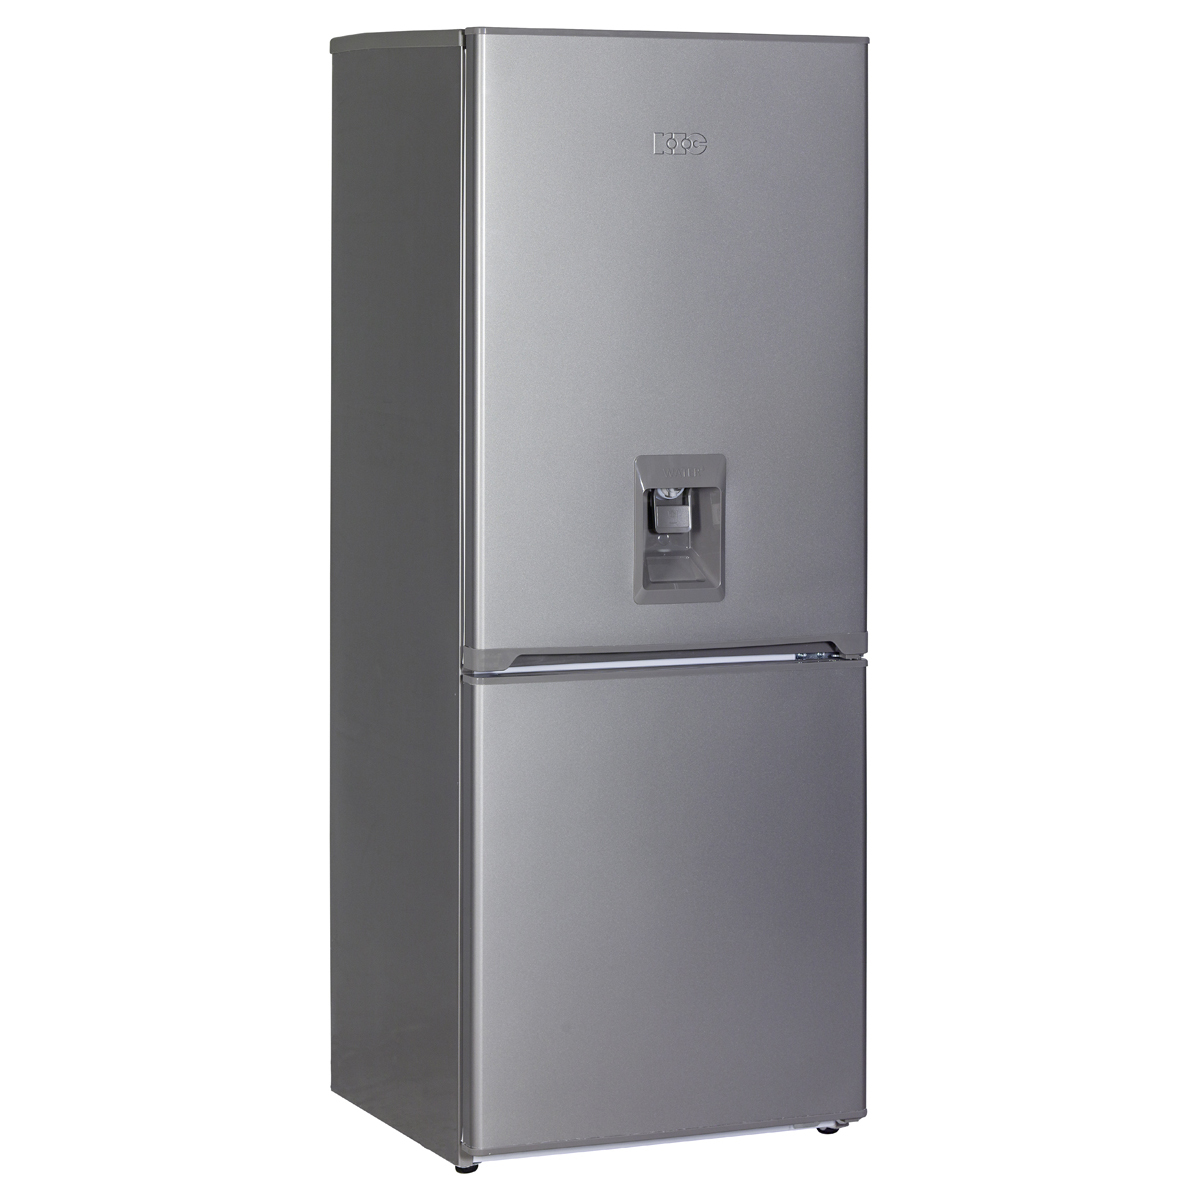 KIC 276ltr 630/1 Water Bottom Freezers with Water Dispenser